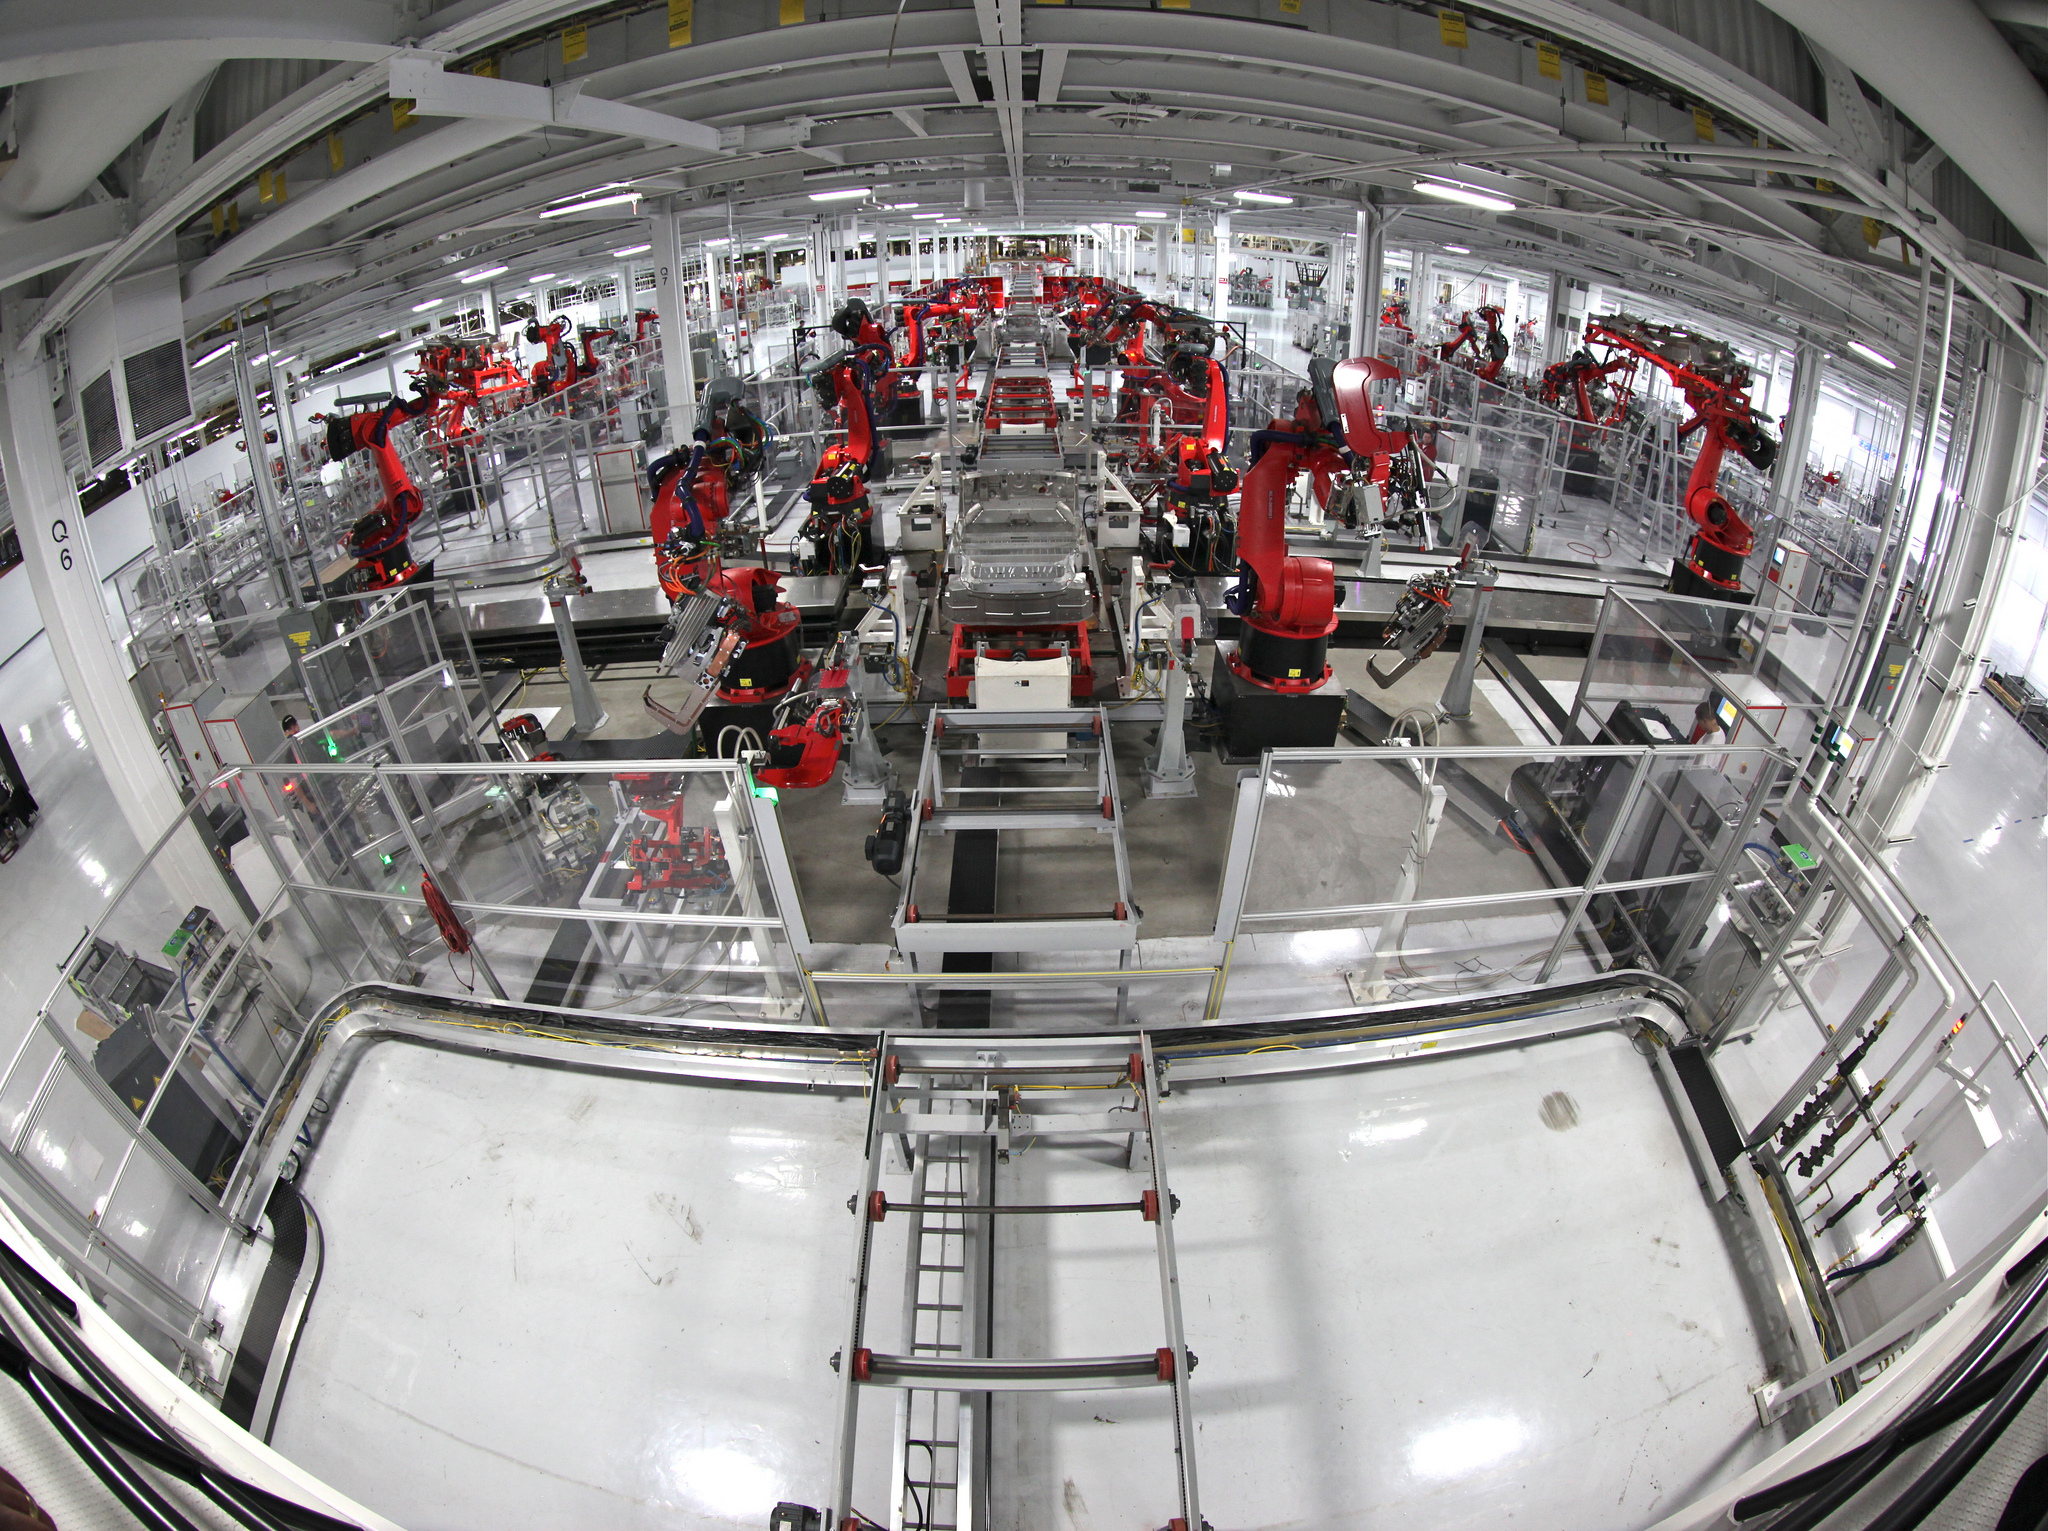 <p>Stereoscopic view of the Tesla Motors assembly line. Photo by Steve Jurvetson/Flickr</p>